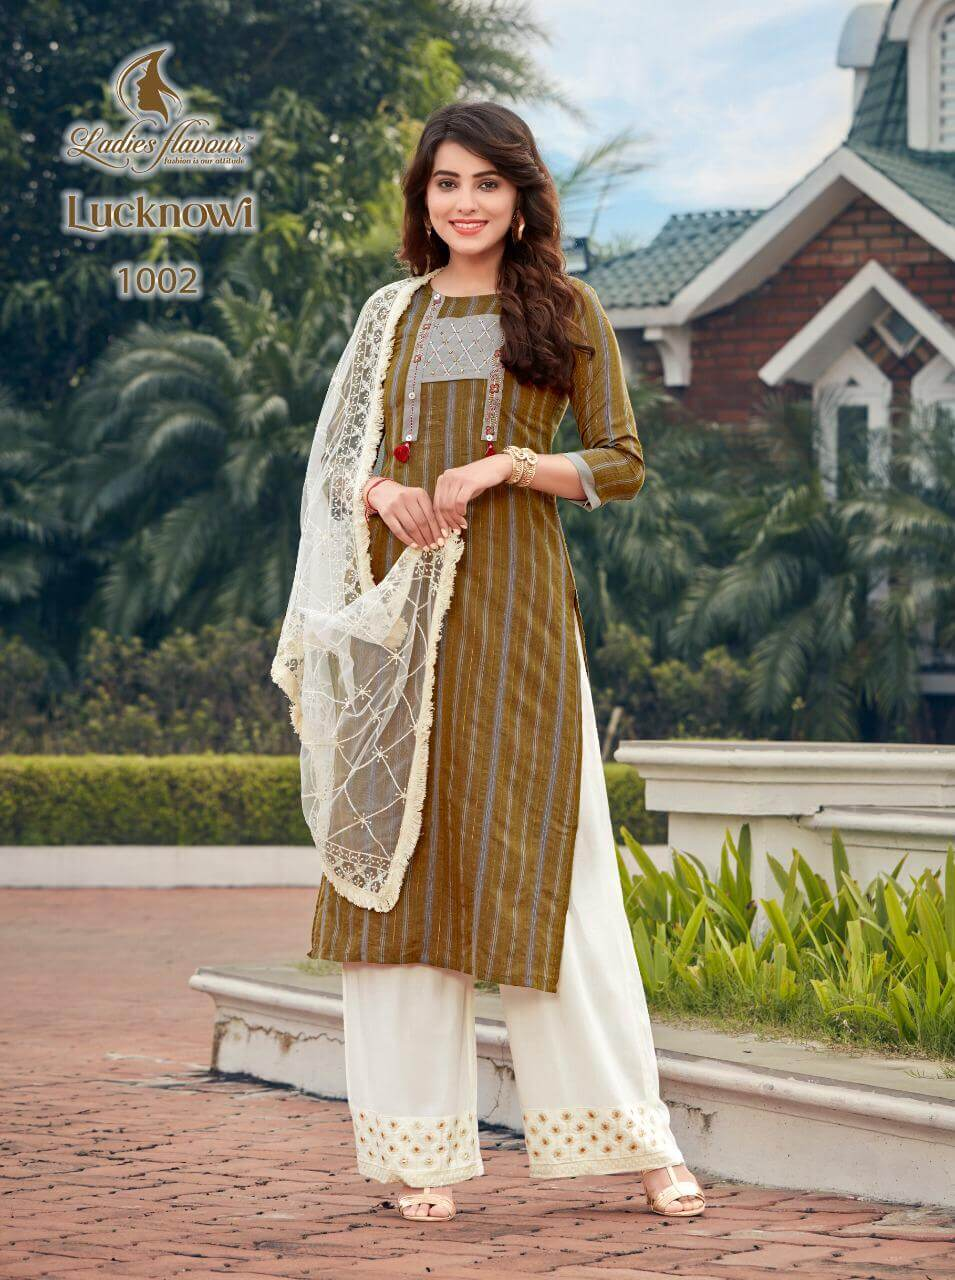 Ladies Flavour Lucknowi collection 5